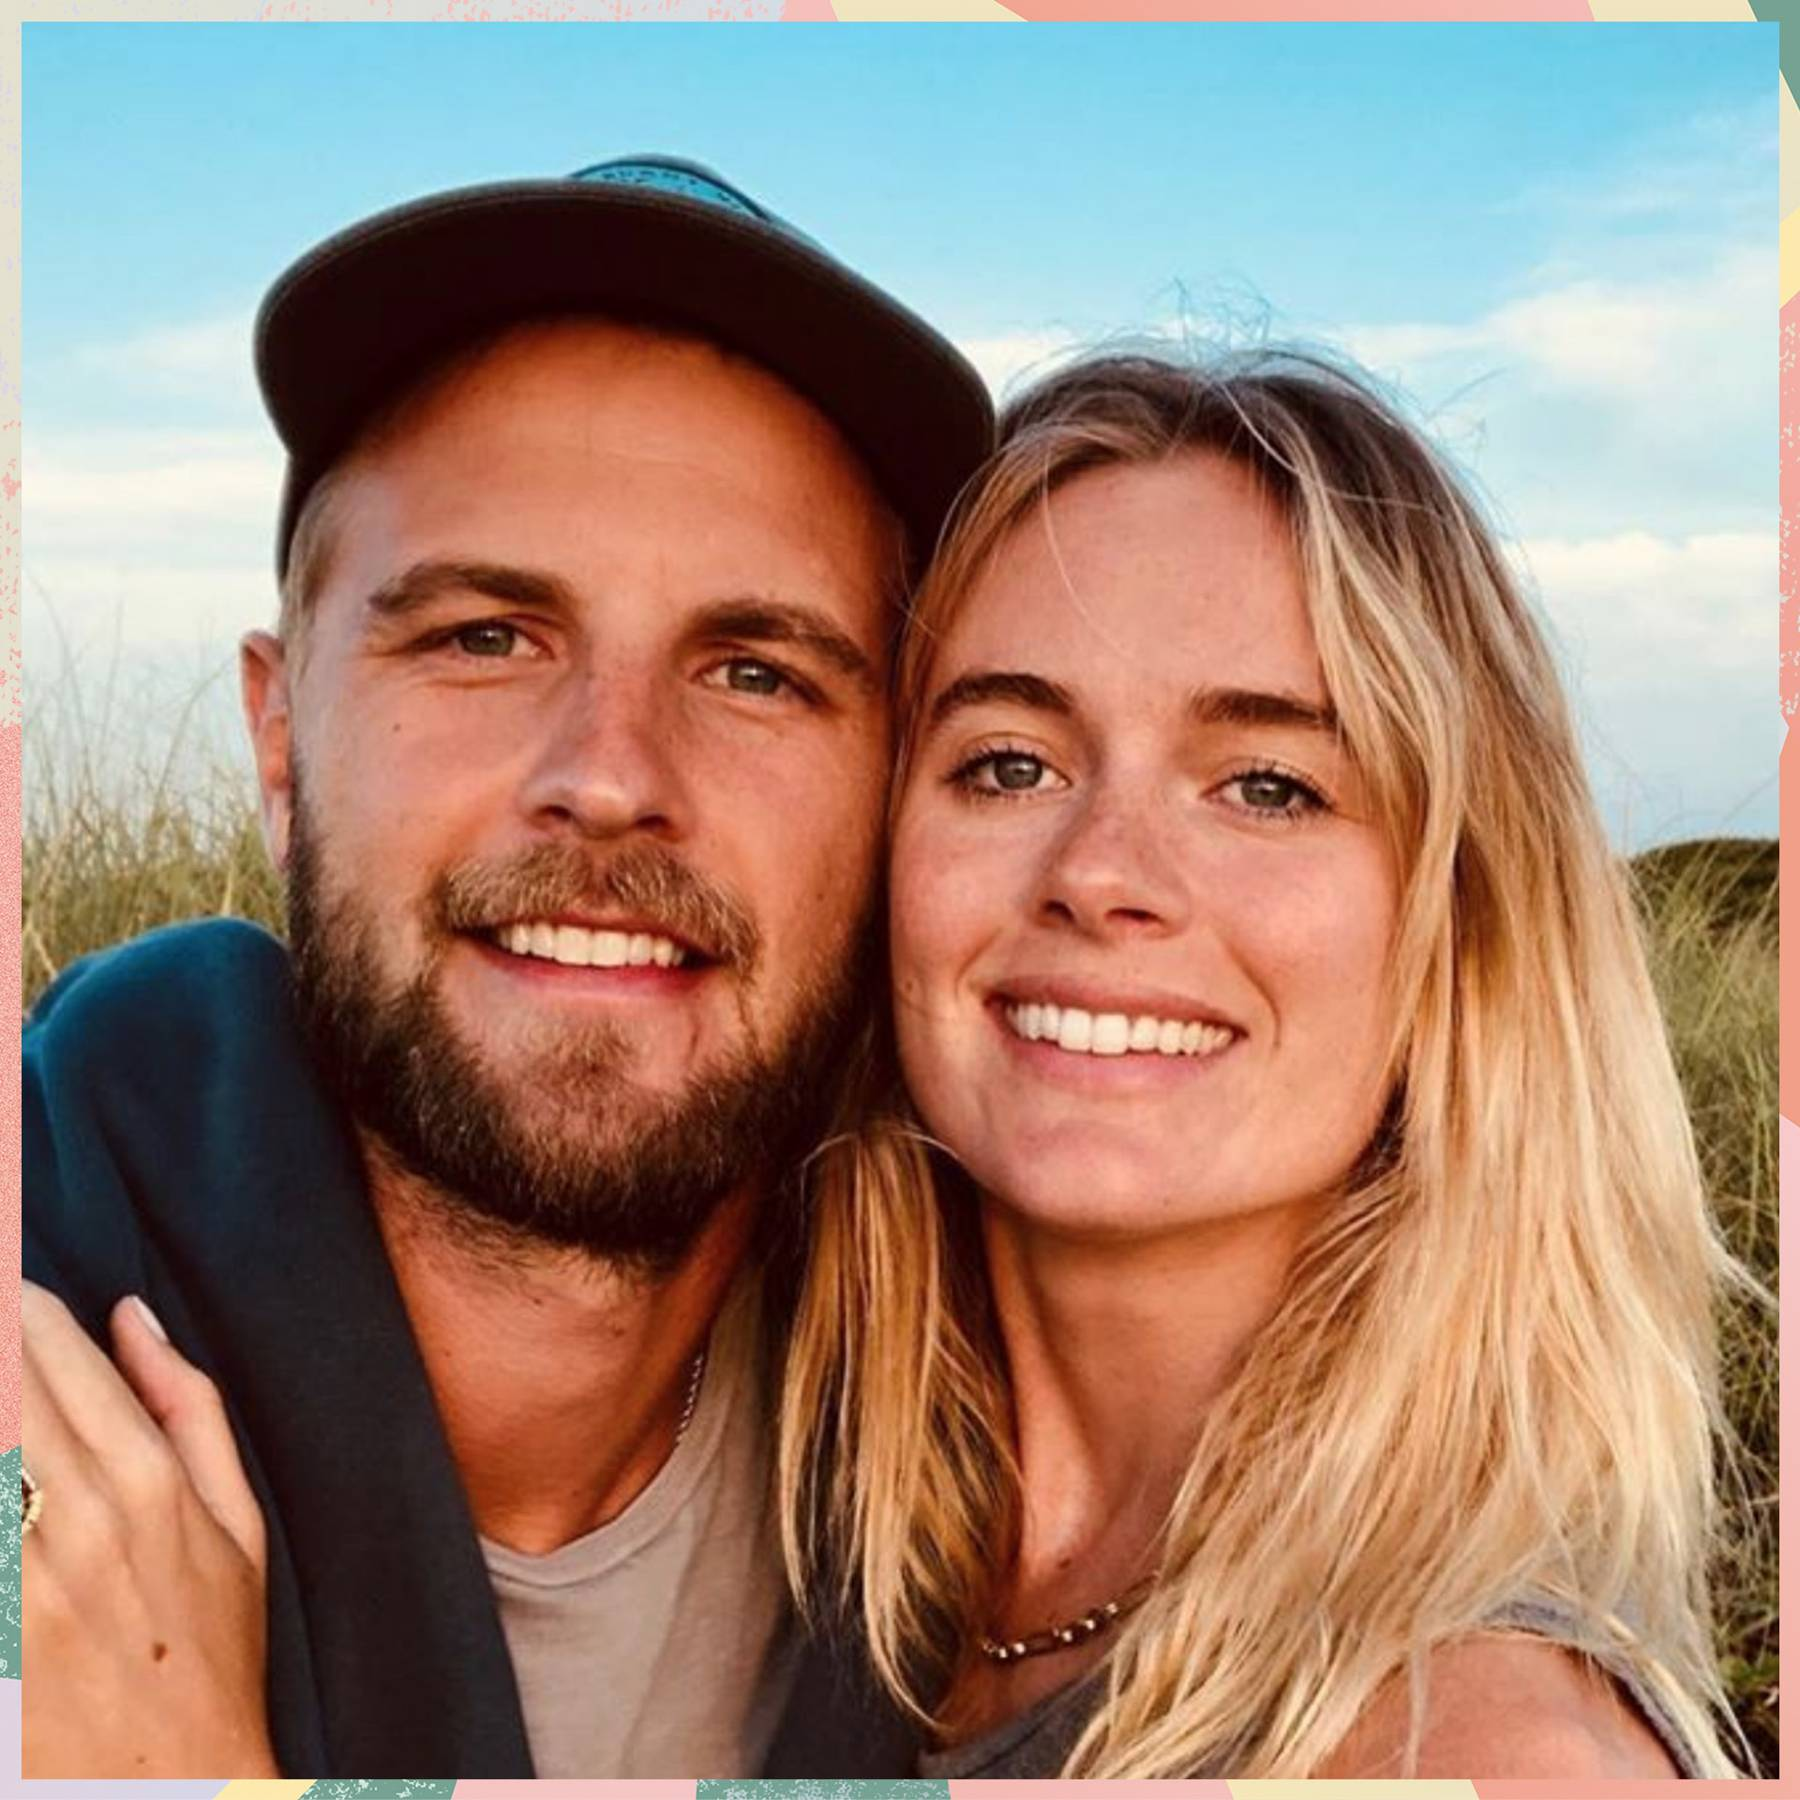 Prince Harry's ex Cressida Bonas just announced she's engaged and wait till you see the ring